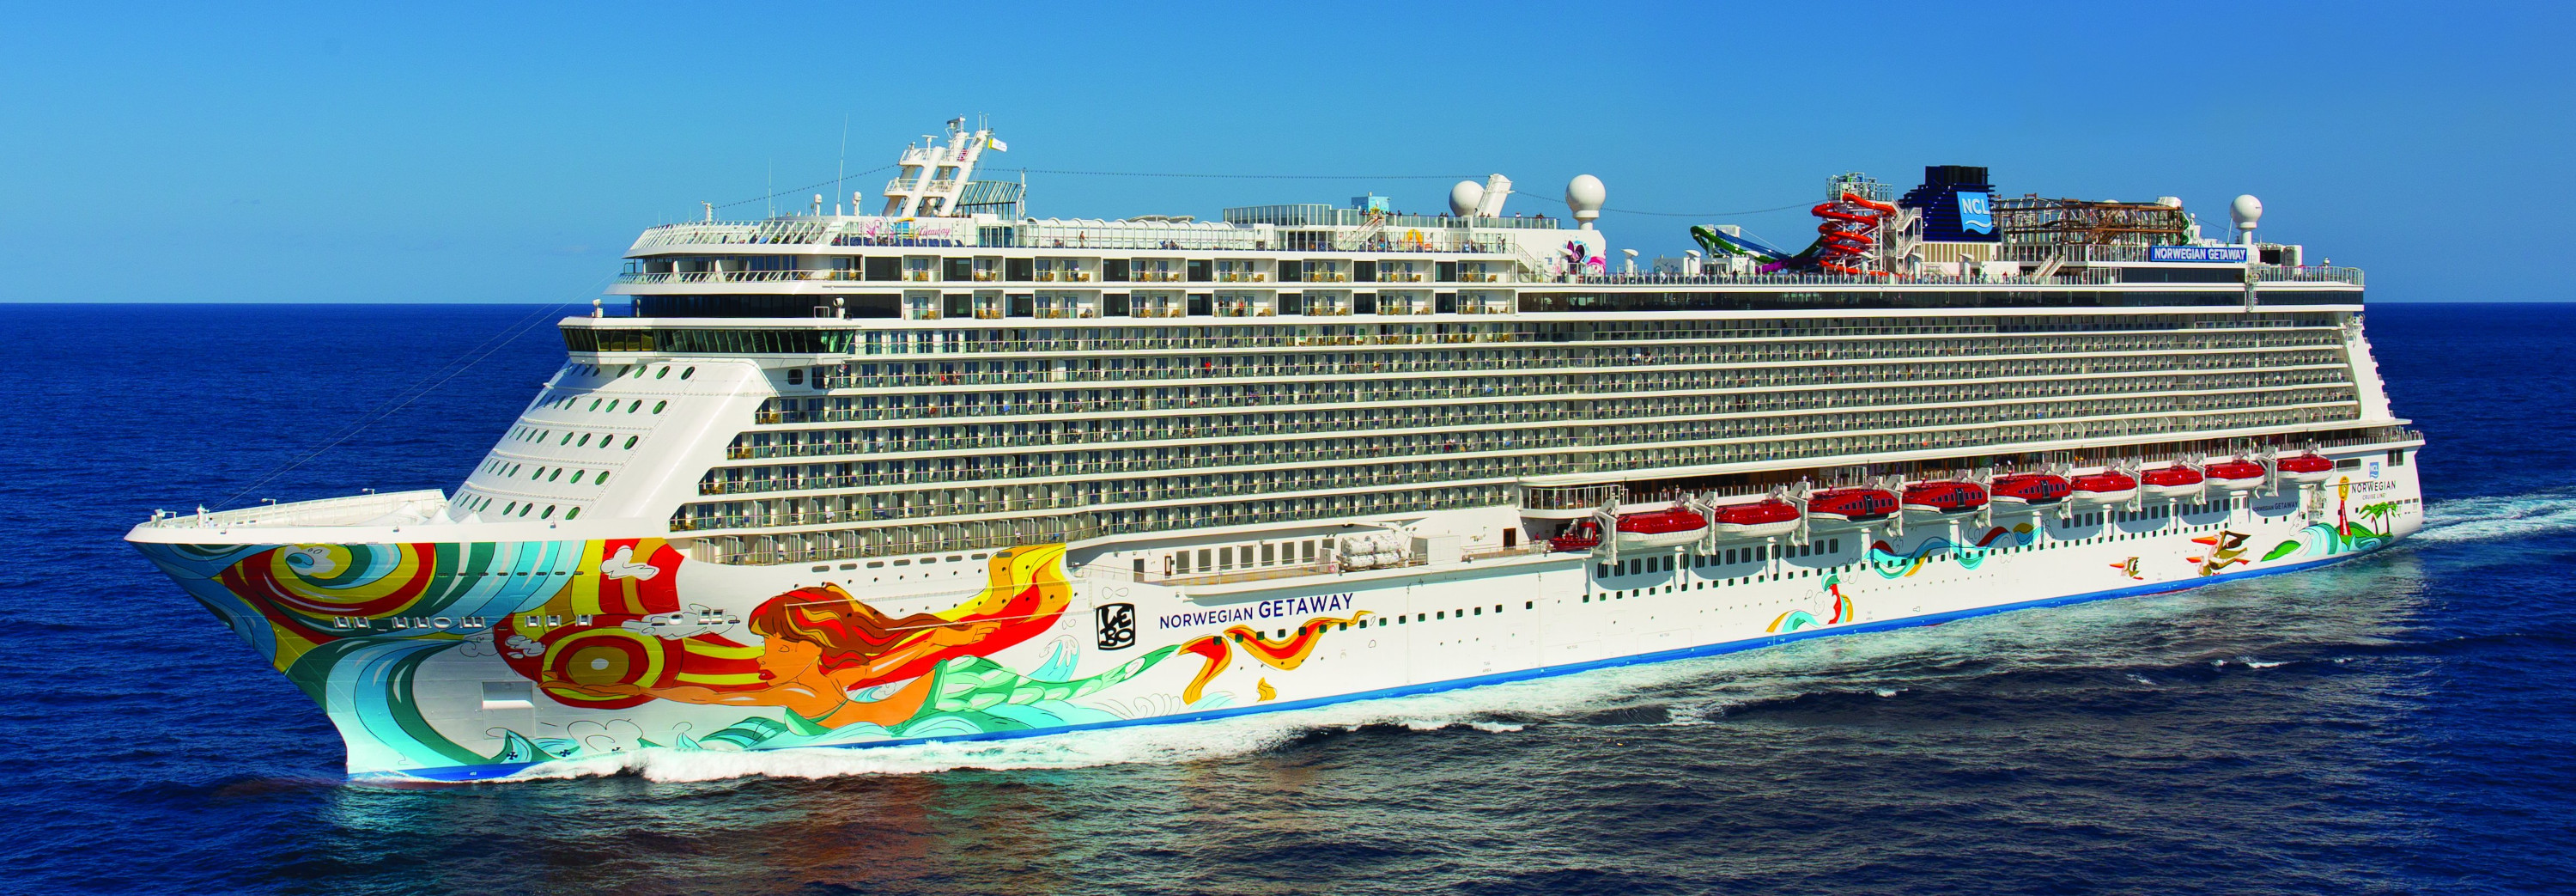 New York to Bahamas Cruise on Norwegian Getaway